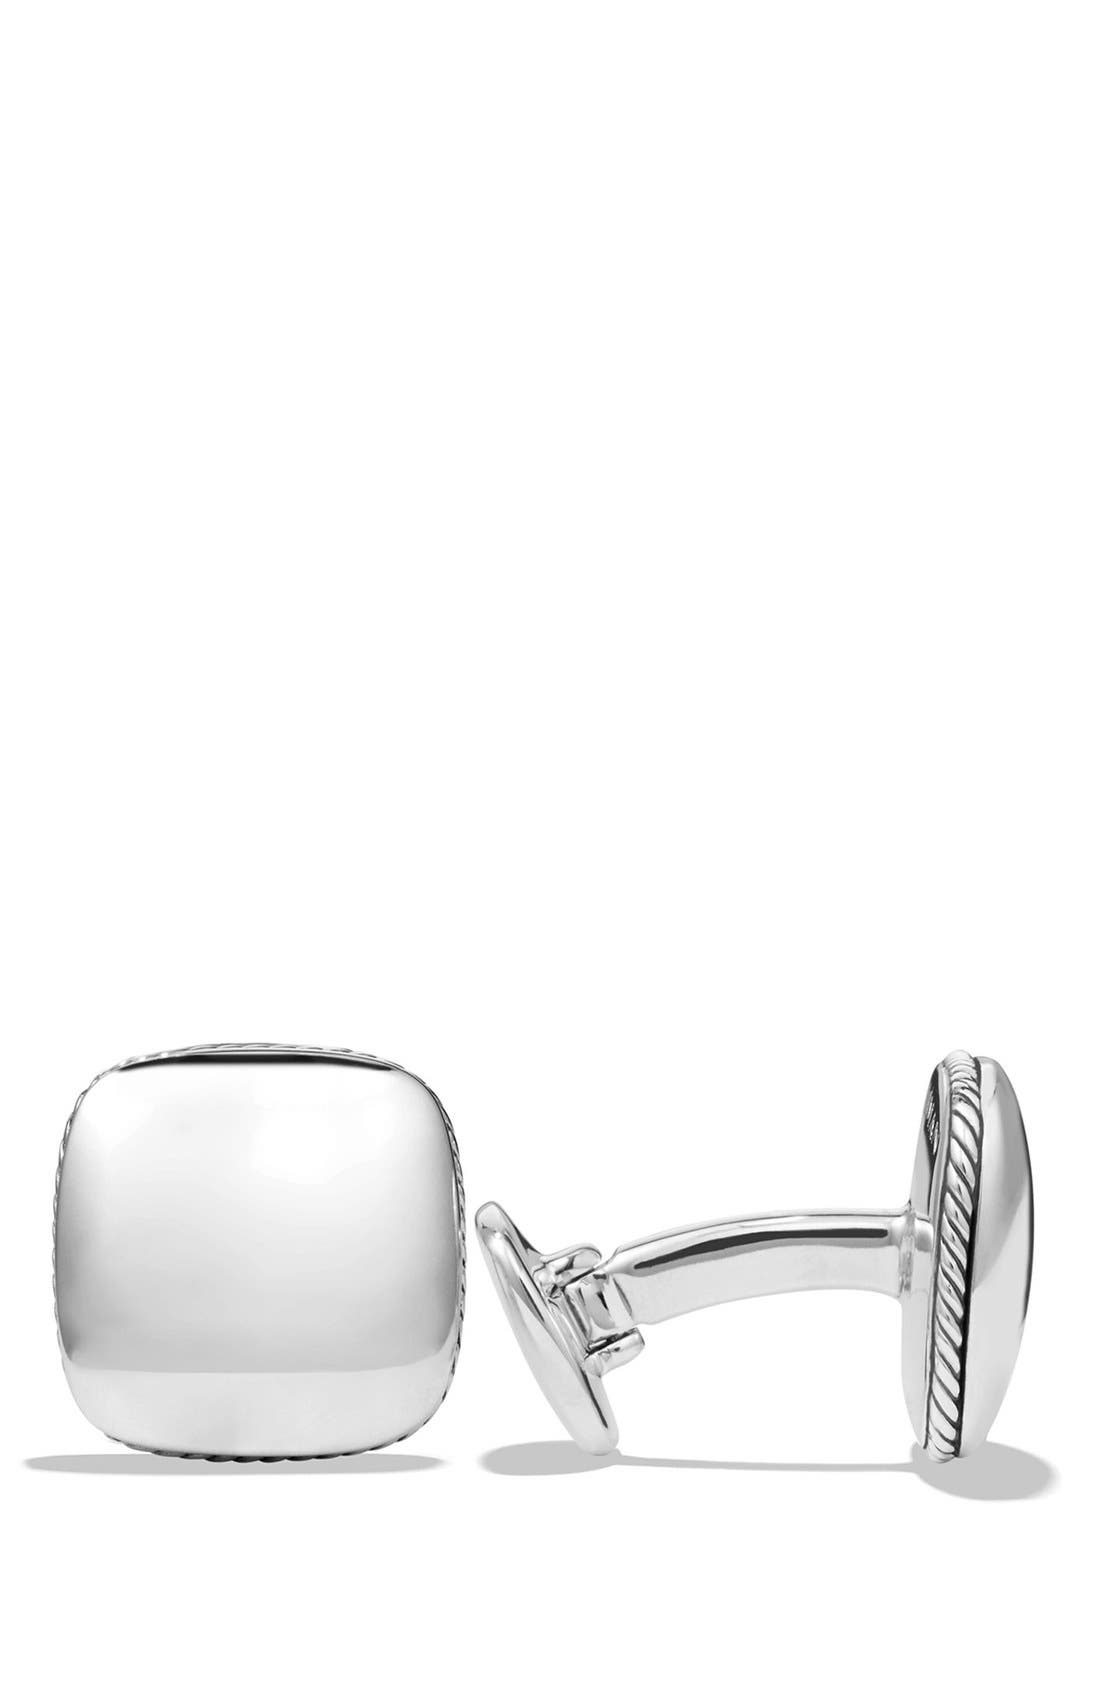 Alternate Image 1 Selected - David Yurman 'Streamline' Cuff links